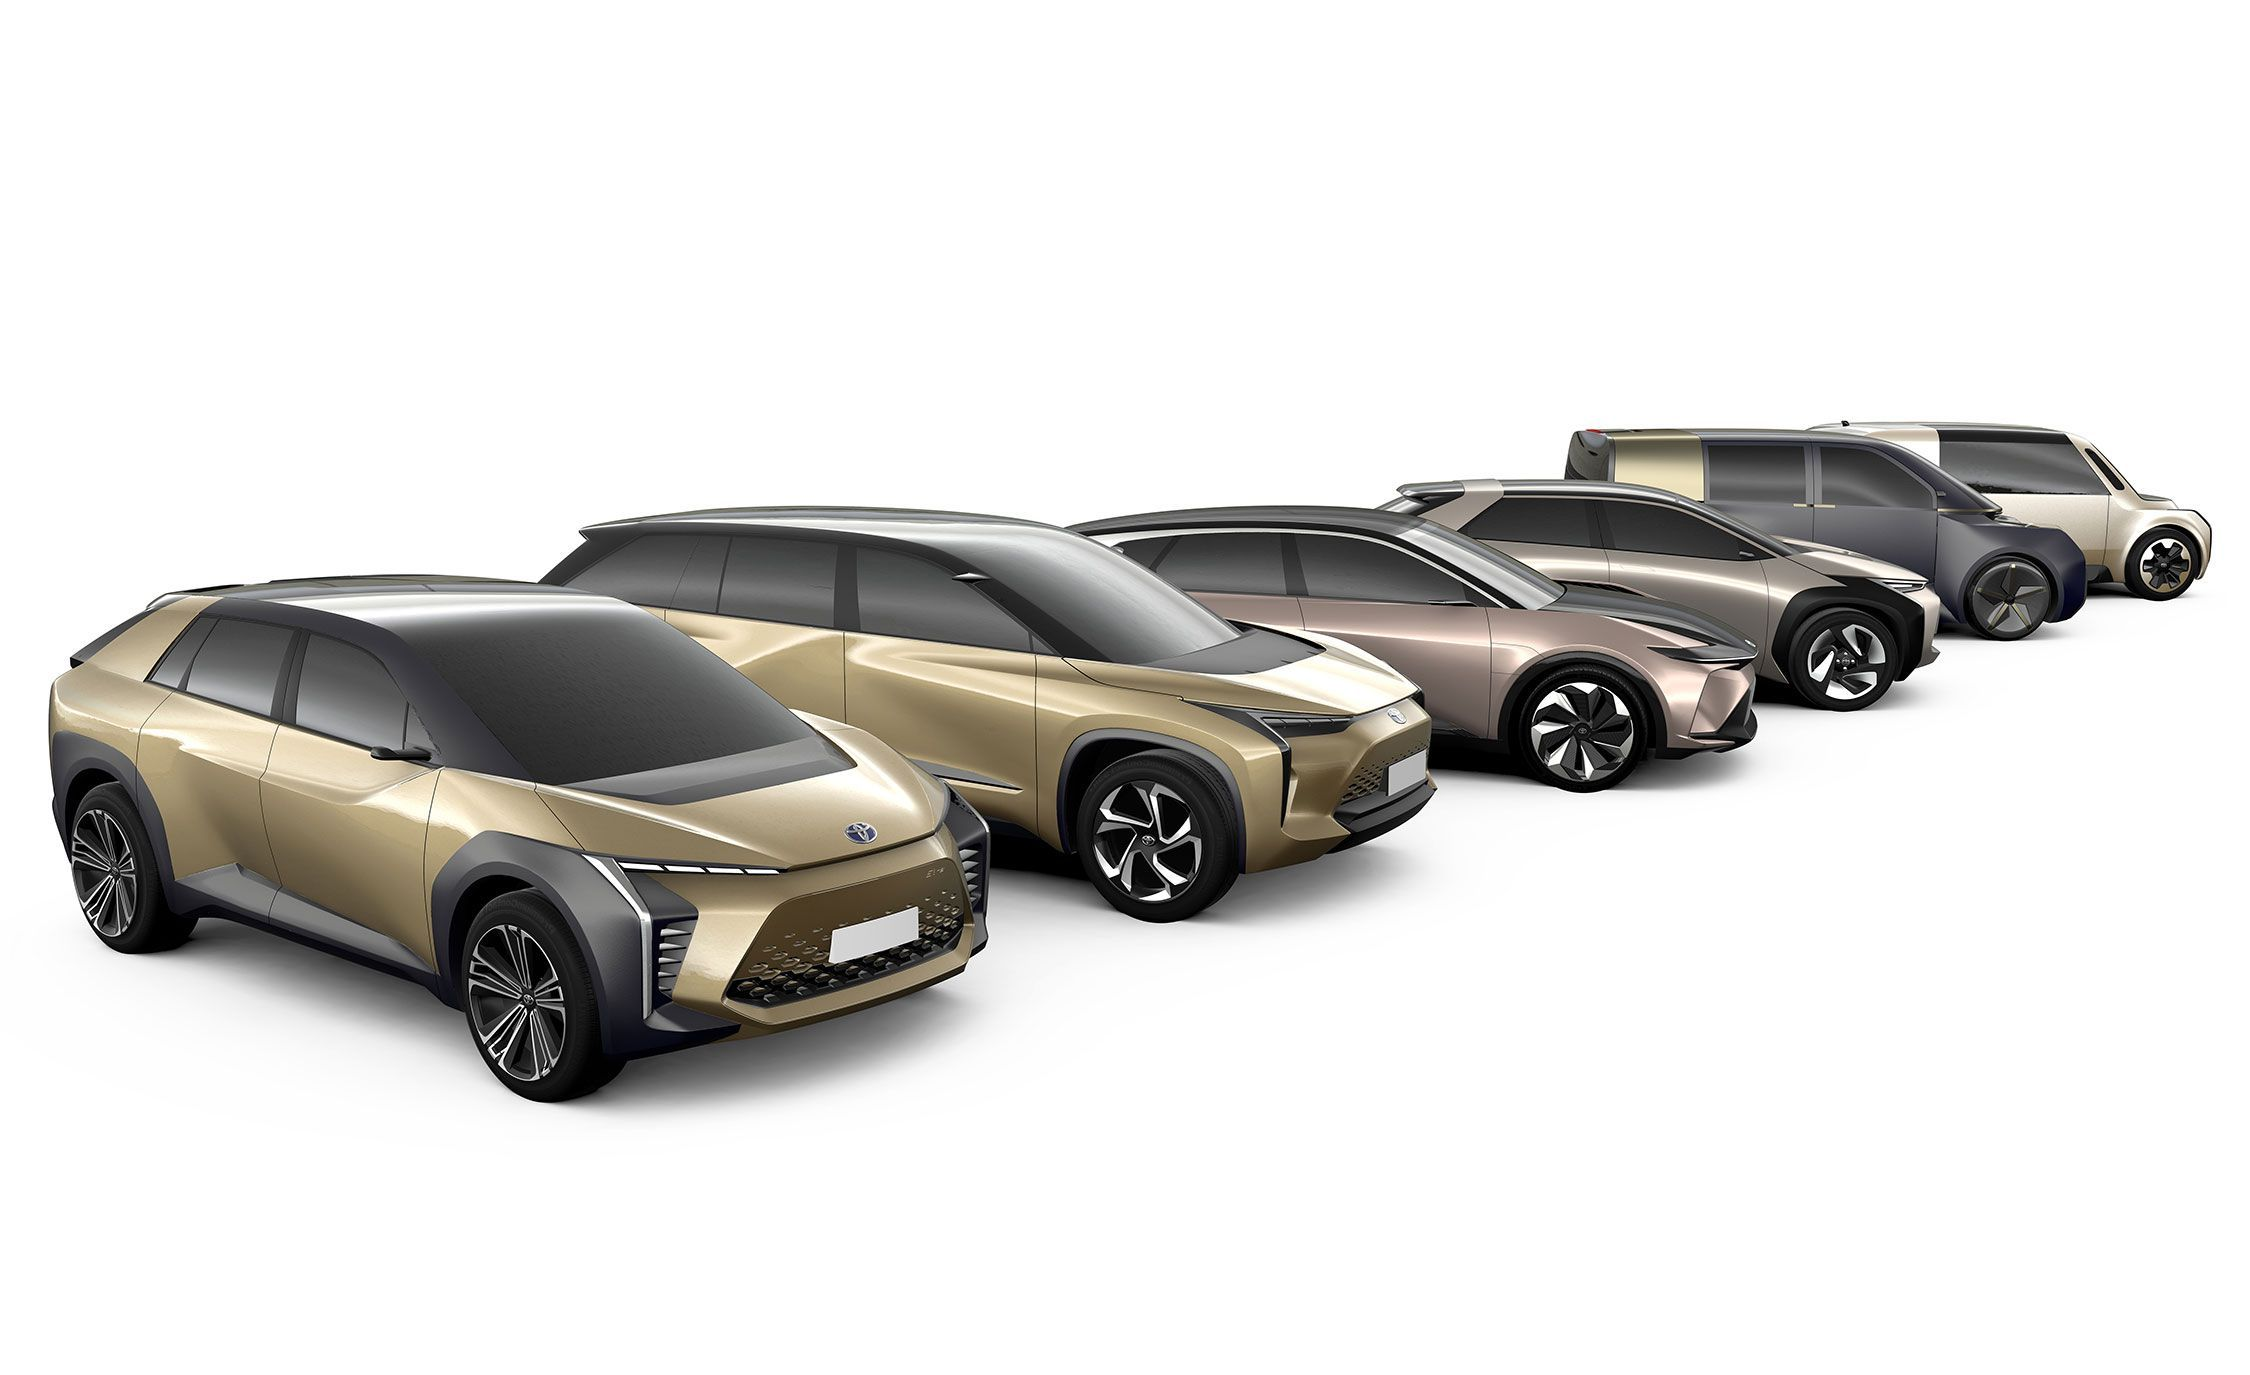 Toyota Details Six New Ev Models Launching For 2020 2025 All Electric Cars Electric Cars Toyota